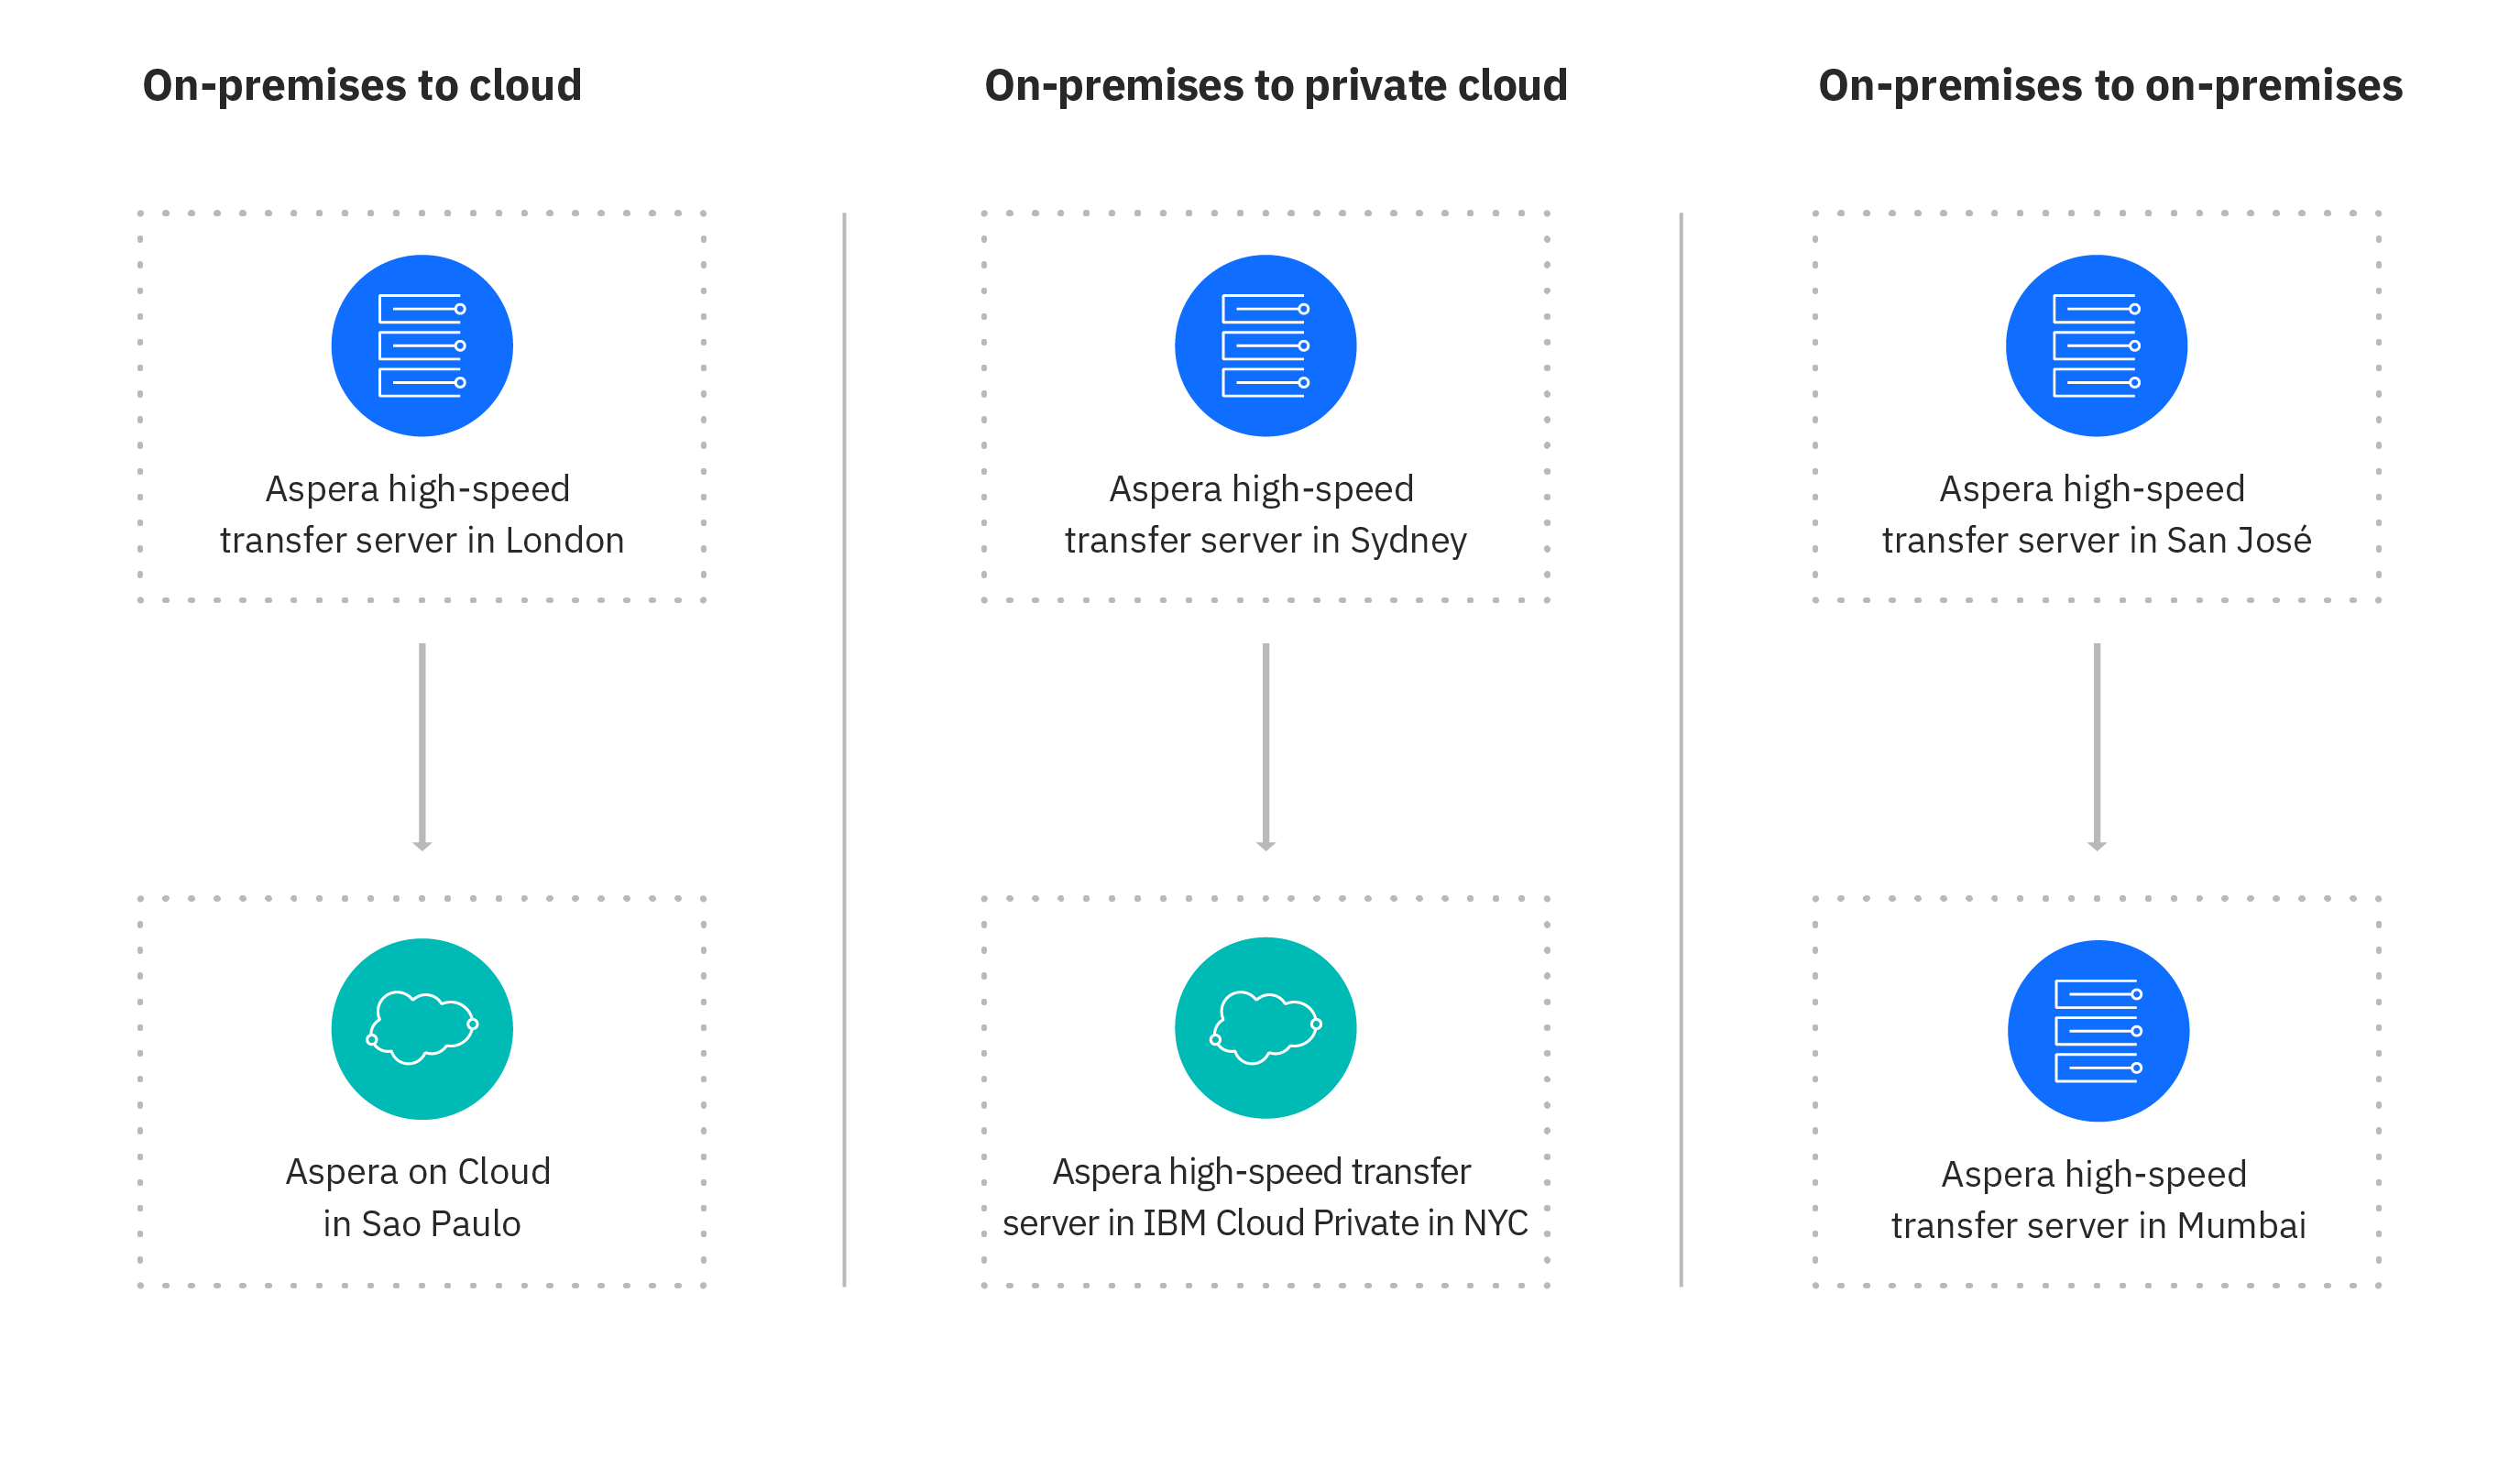 Diagram of Aspera data migration from on-premises to cloud, to private cloud, or to on-premises